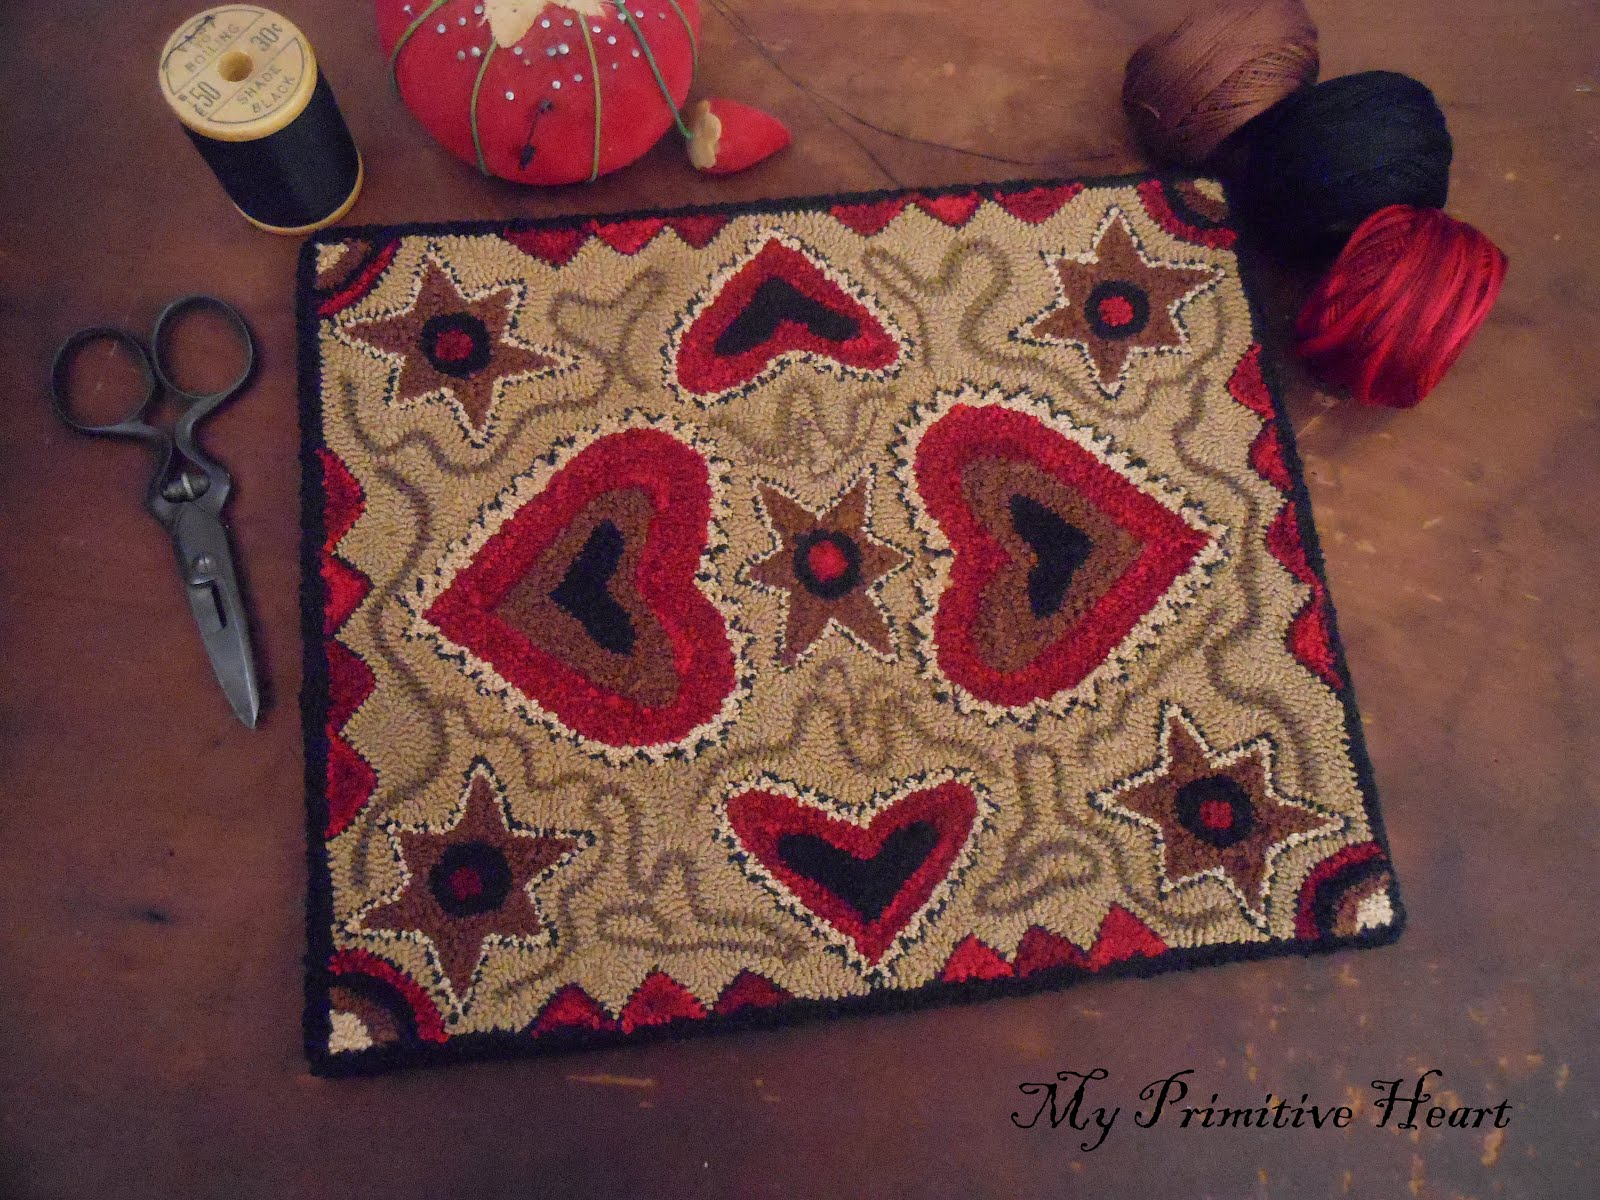 FOLK ART HEARTS PUNCH NEEDLE PATTERN - $8.00